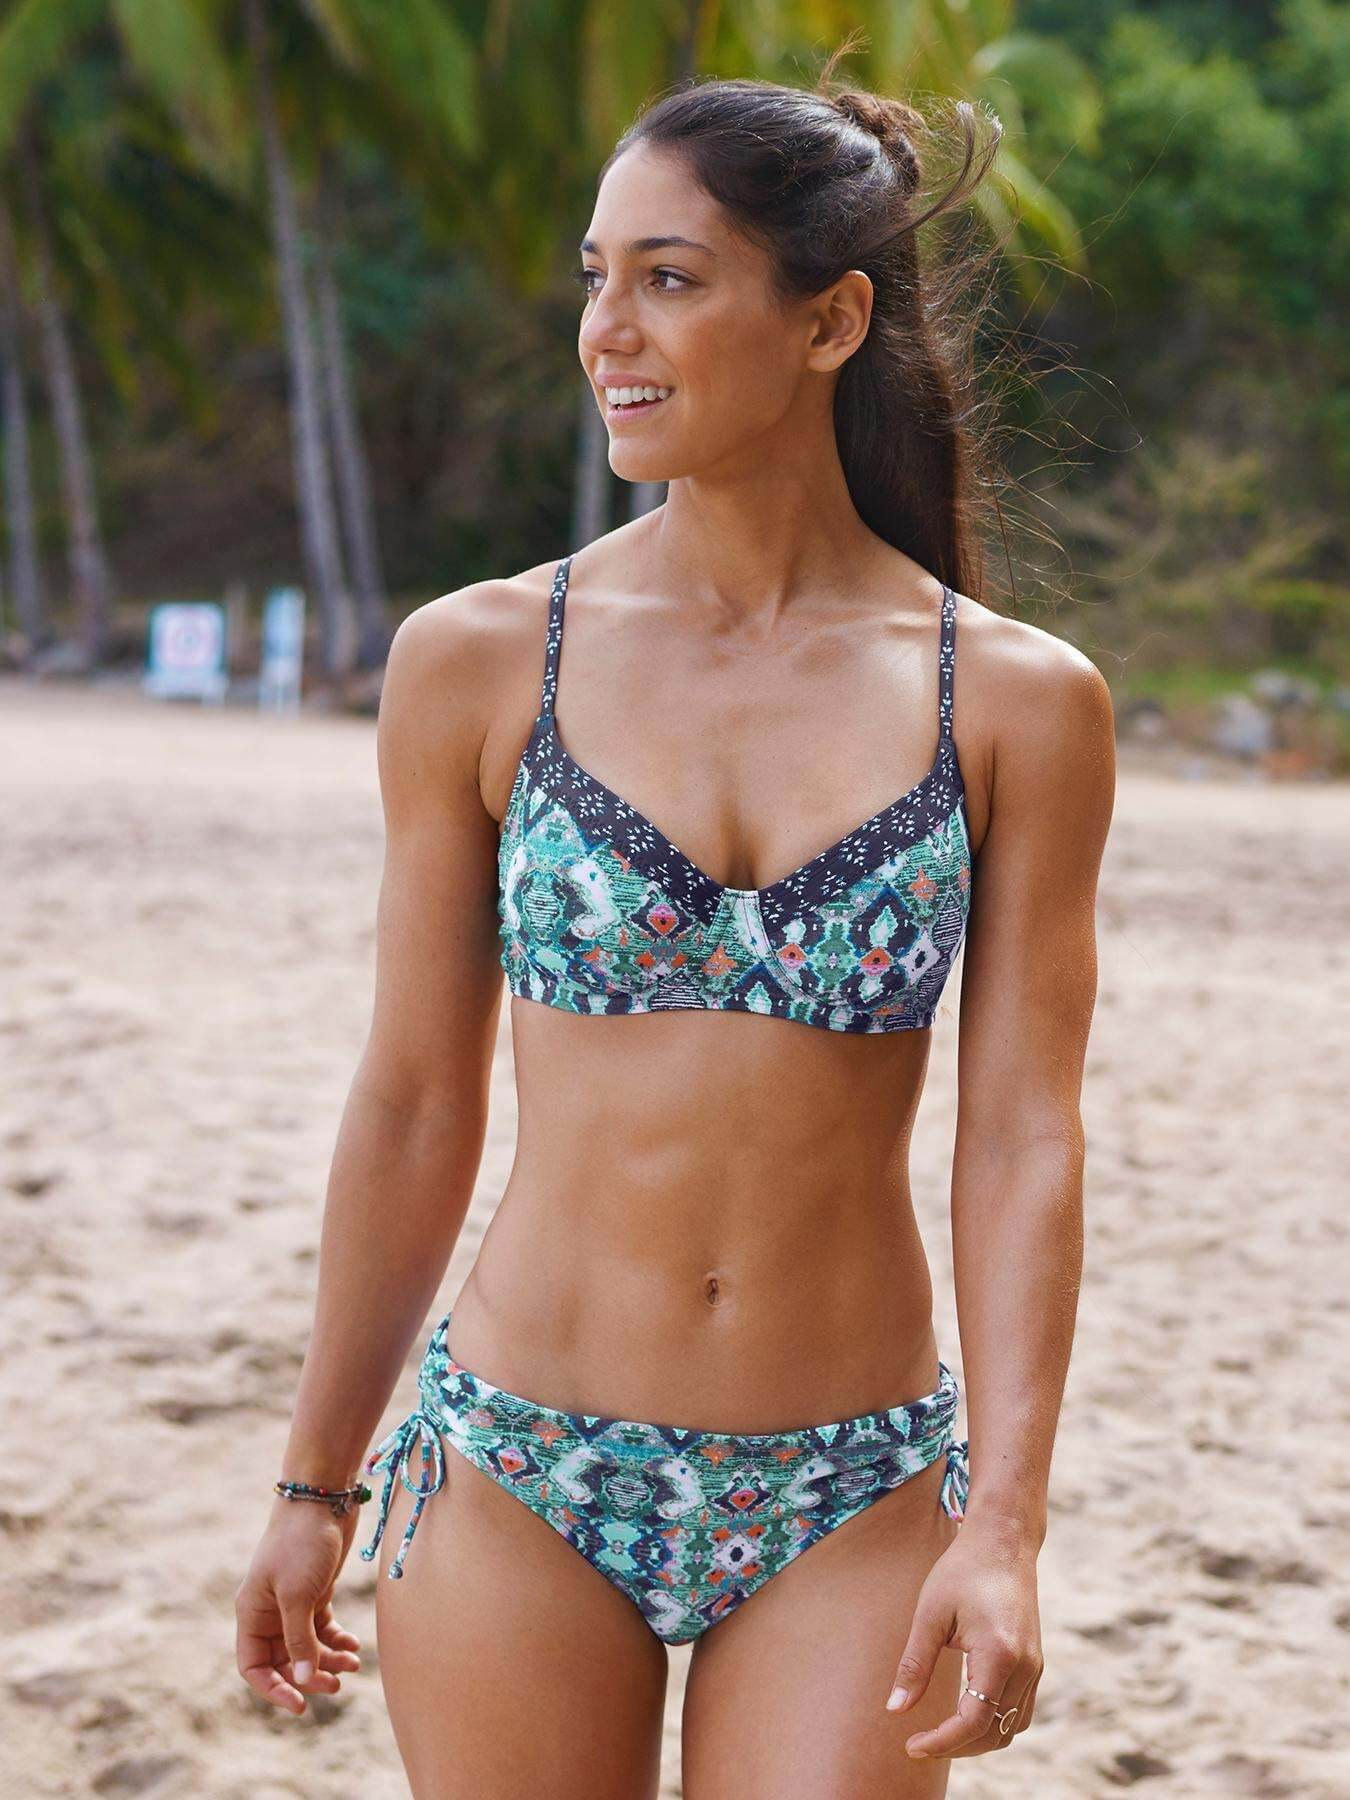 Allison Stokke Hot in Bikini